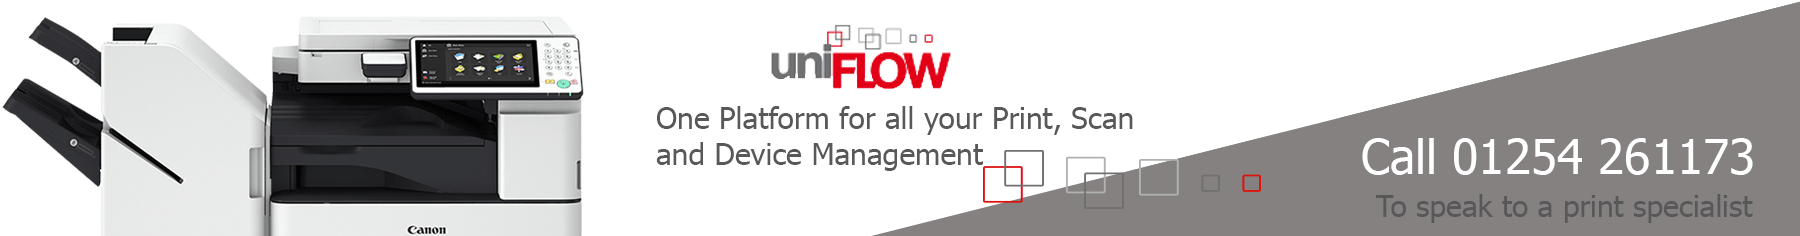 uniflow canon - uniflow workflow canon